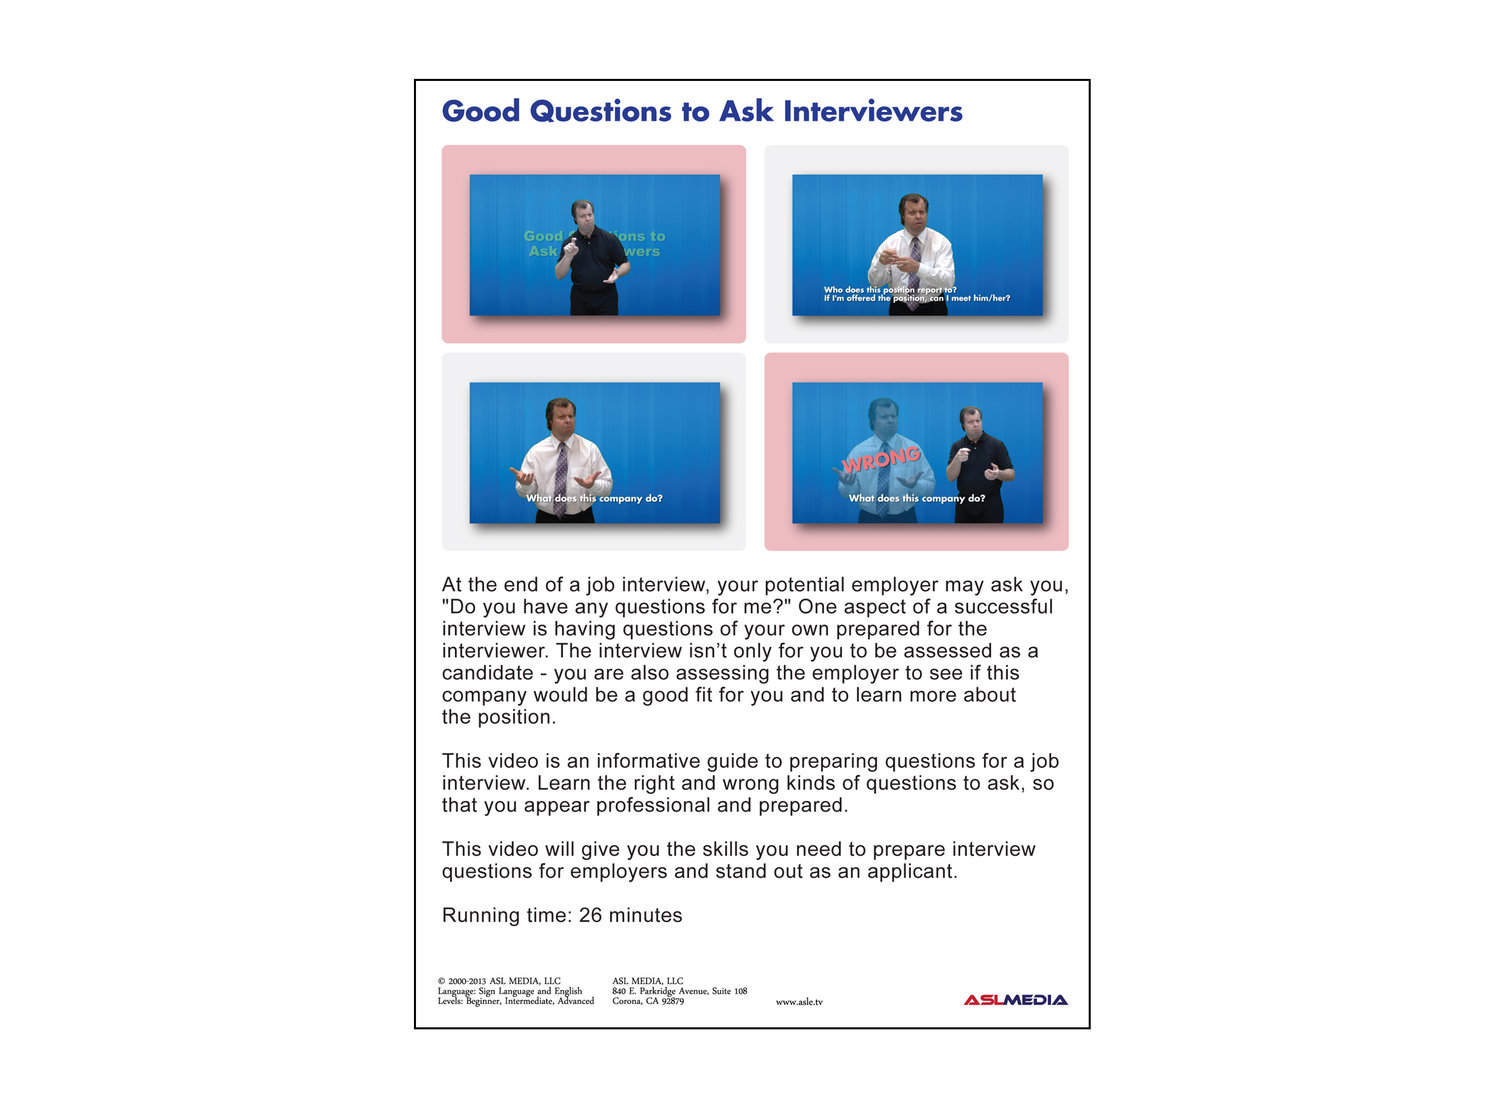 job success good questions to ask interviewers dvd first version - Interview Checklist For Employer Interview Checklist And Guide For Employers